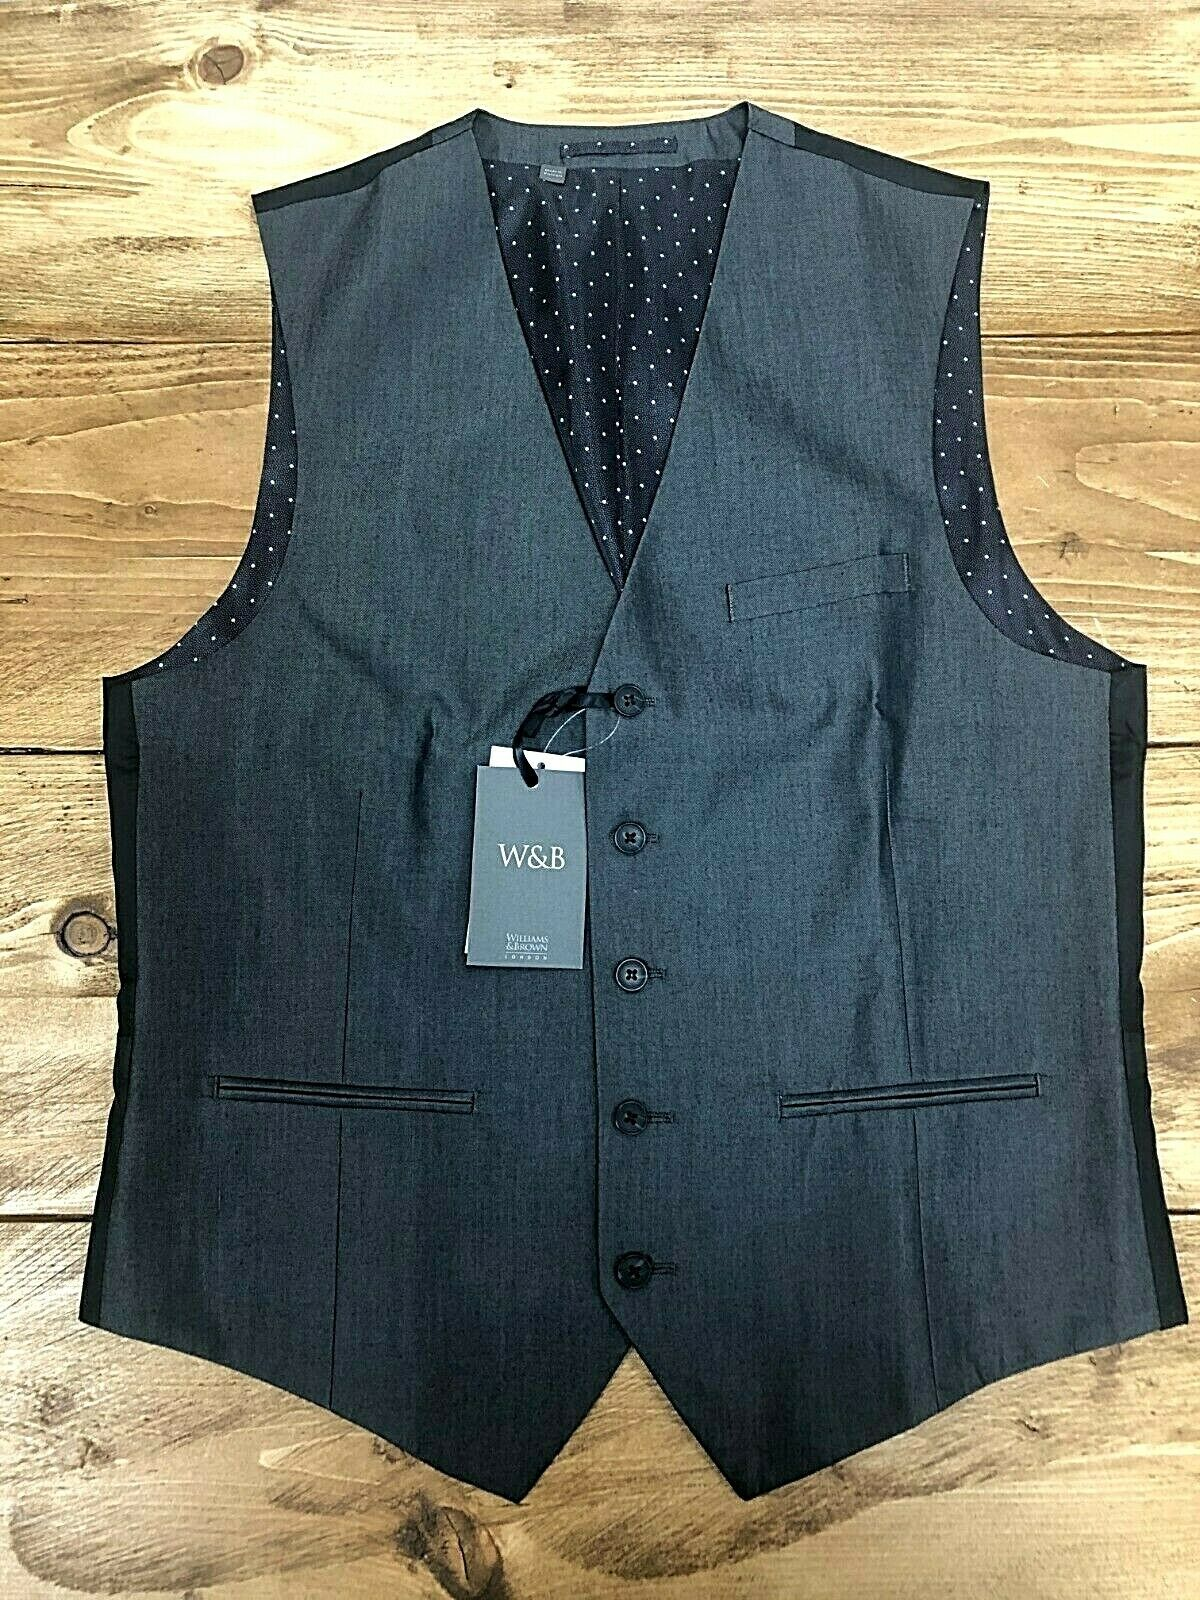 Mens Williams & Brown Charcoal Grey with Polka Dot Lining Waistcoat Size 40R